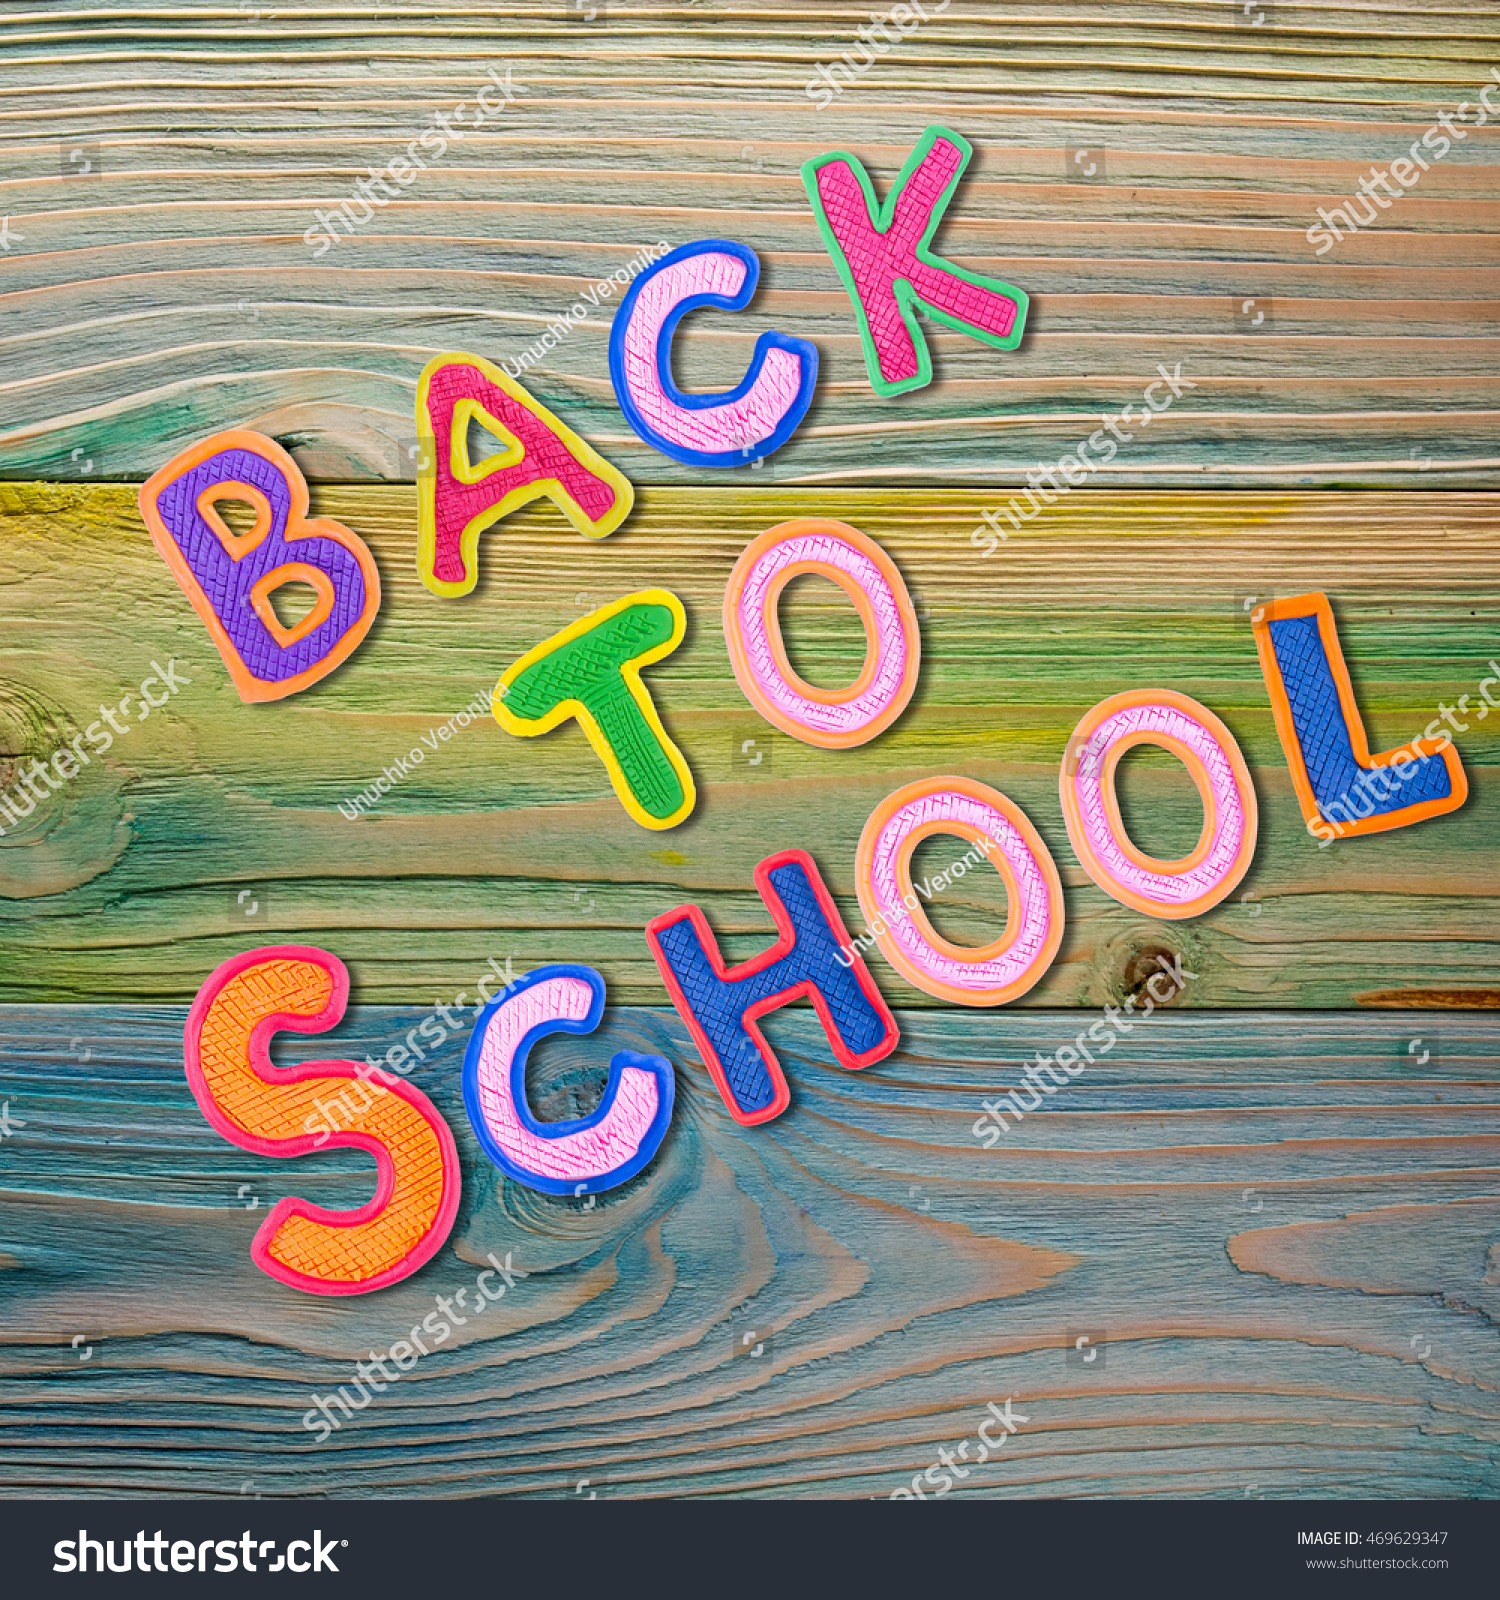 Back To School Desk Table Top View, Words On Grunge Old Wooden Board  Background.